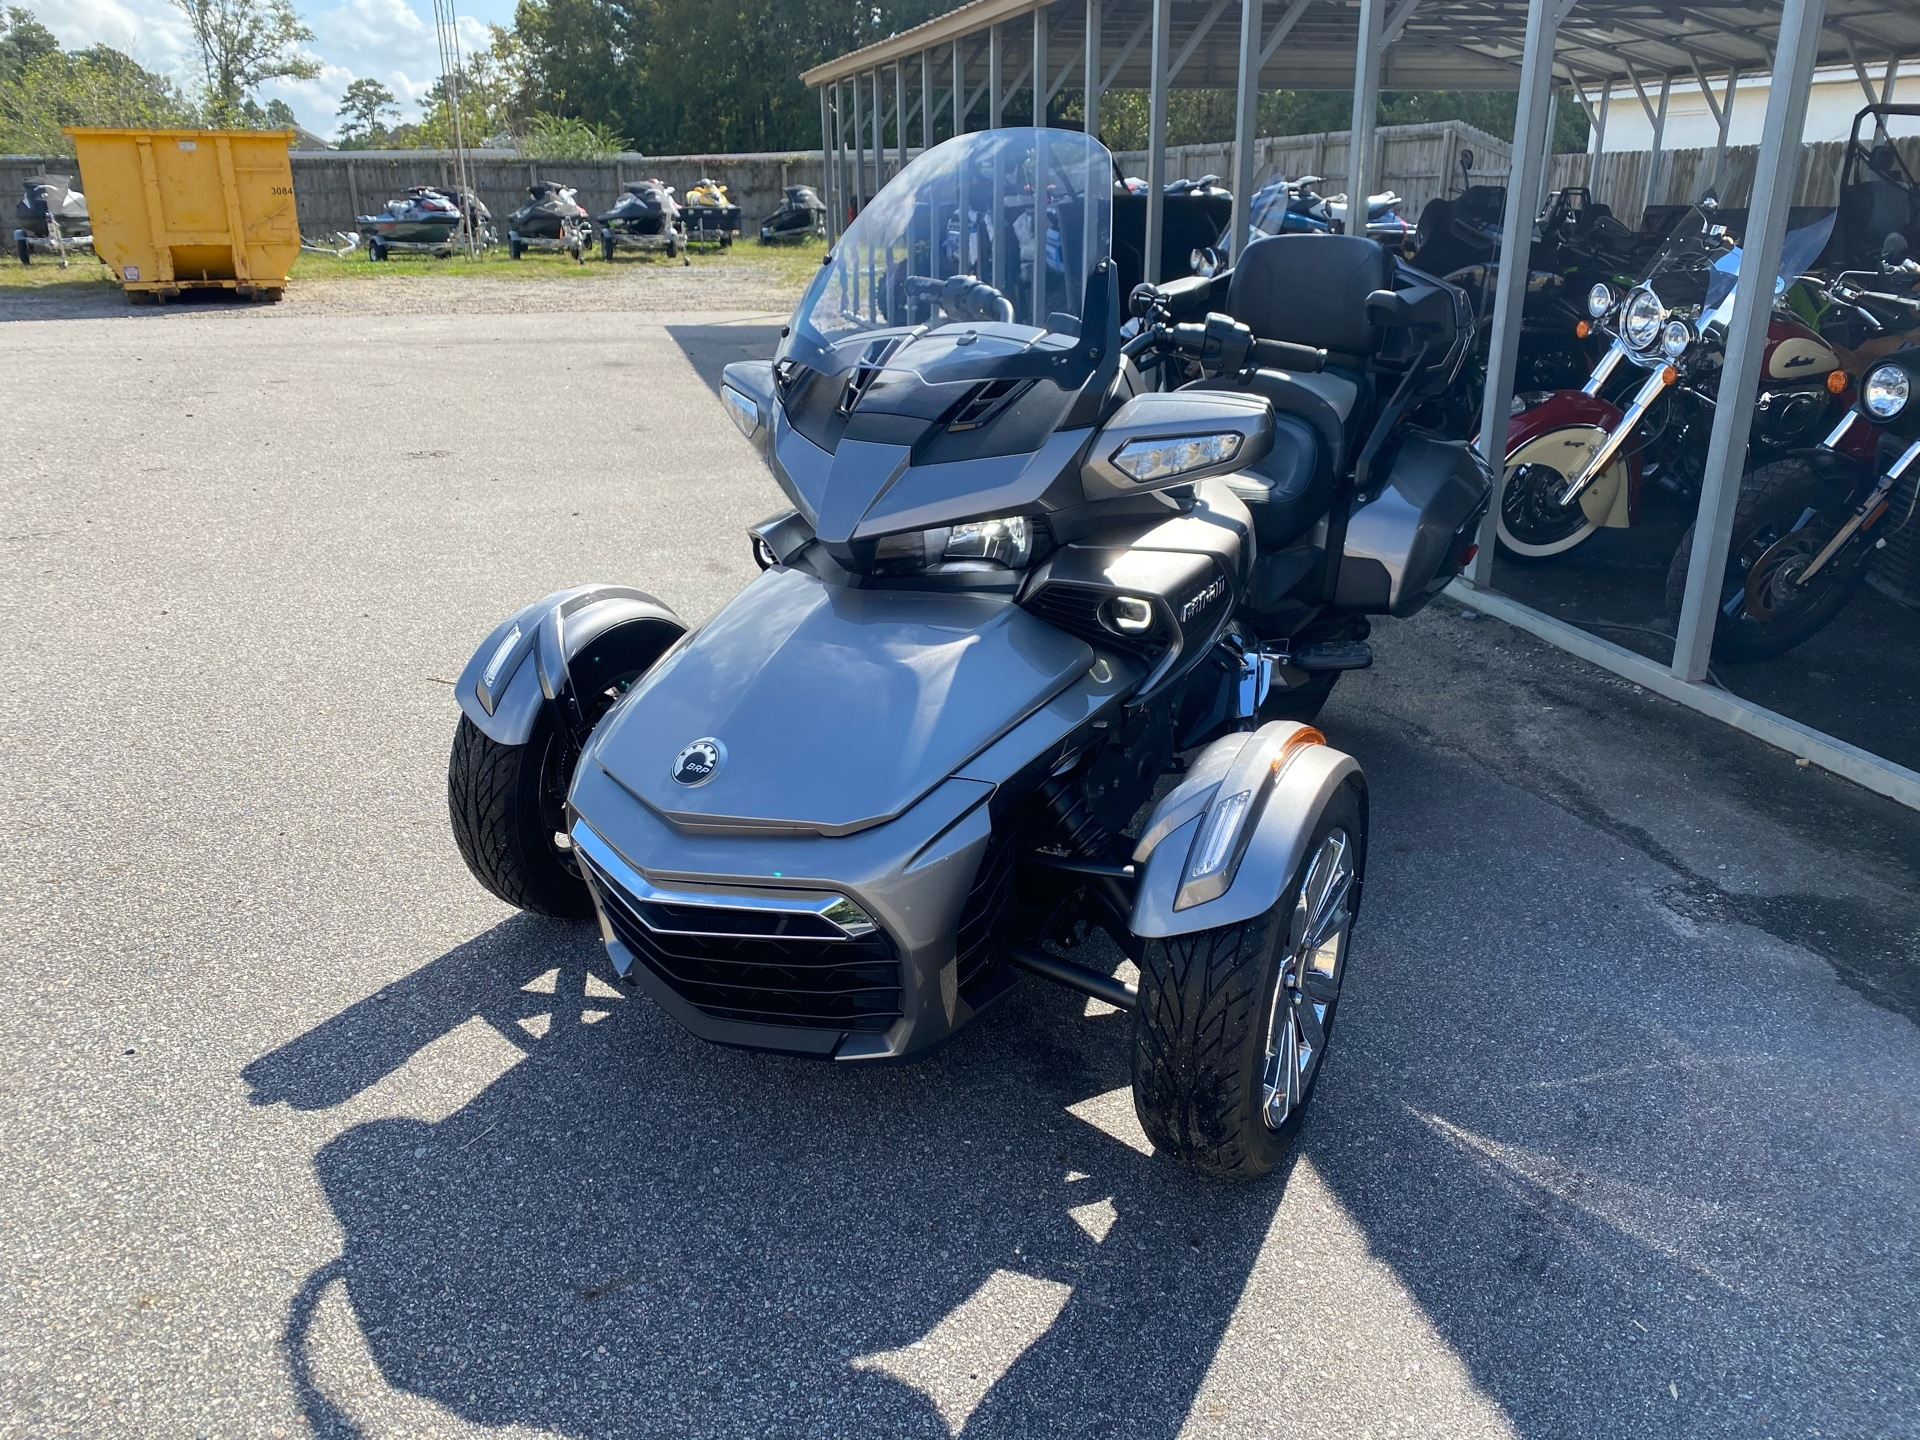 2017 Can-Am Spyder F3 Limited in Chesapeake, Virginia - Photo 5